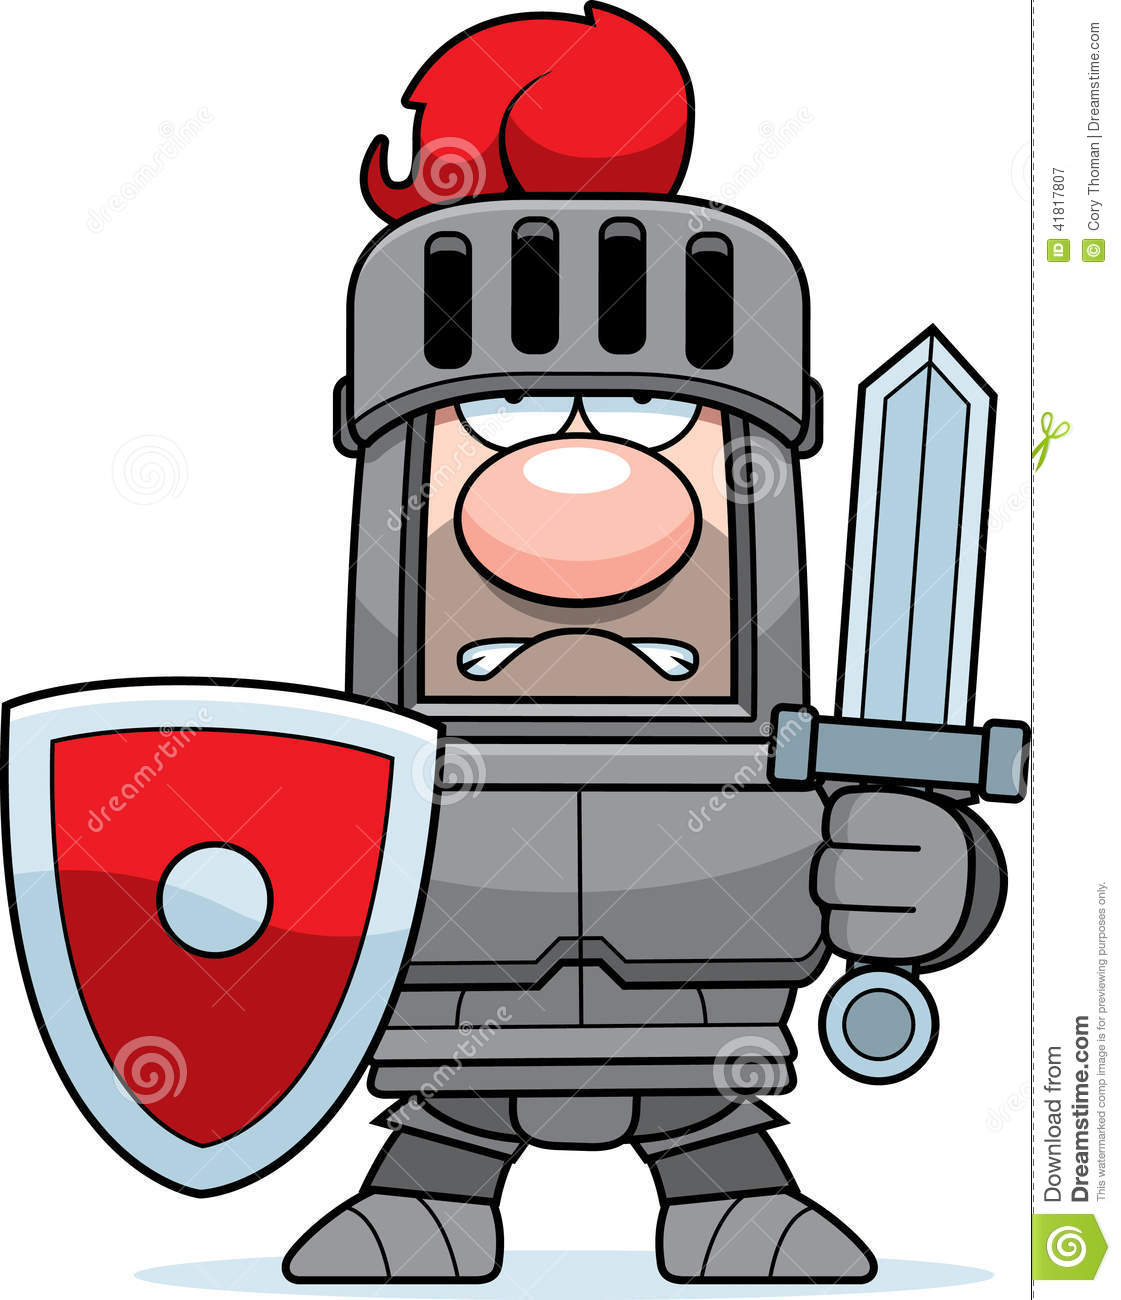 Cartoon Knight In Armor Stock Vector - Image: 41817807